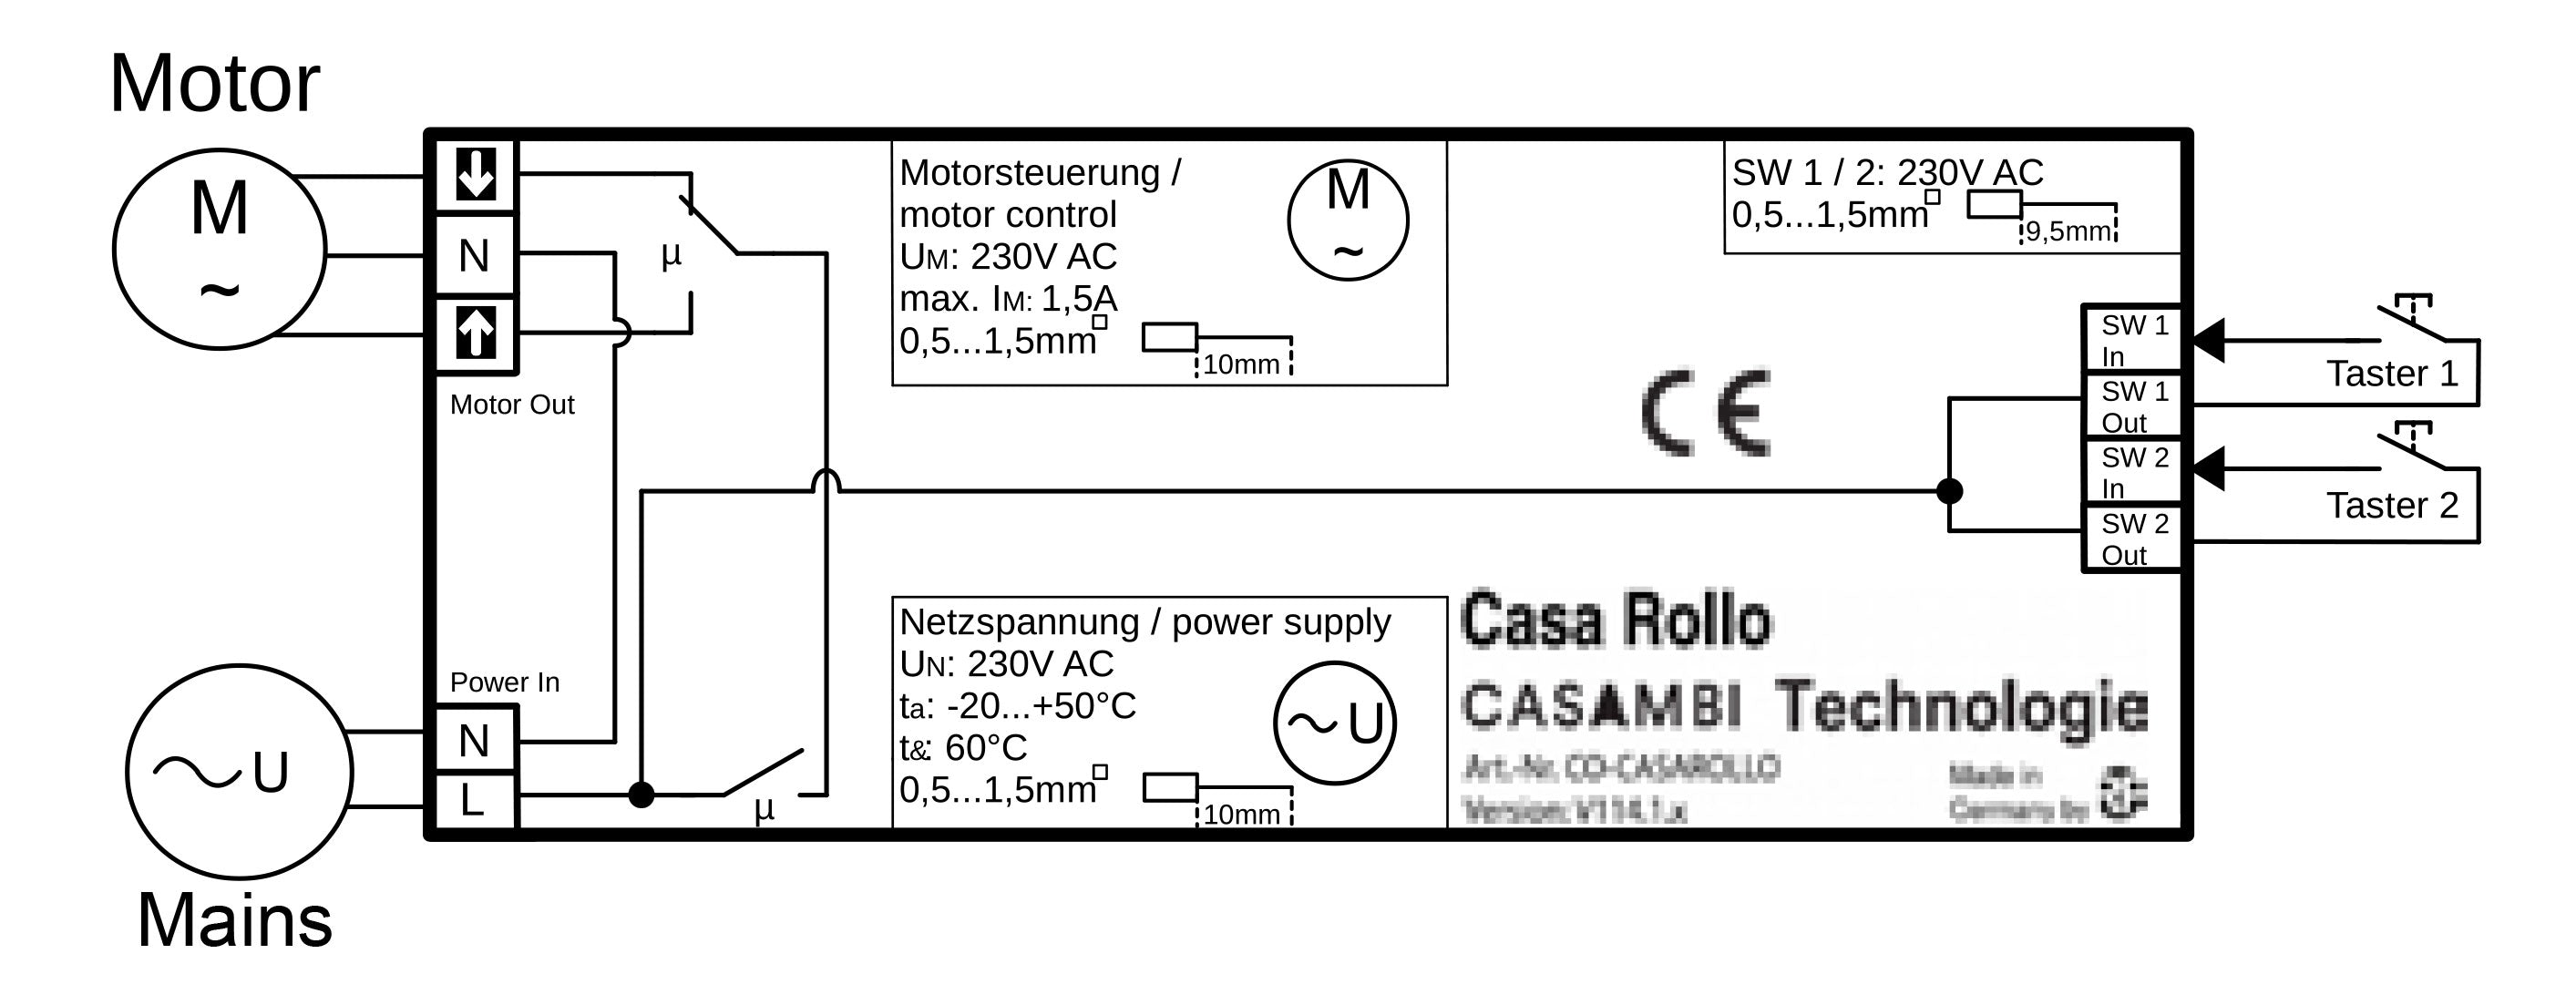 aansluitschemaTechnical-Data-Casa-Rollo